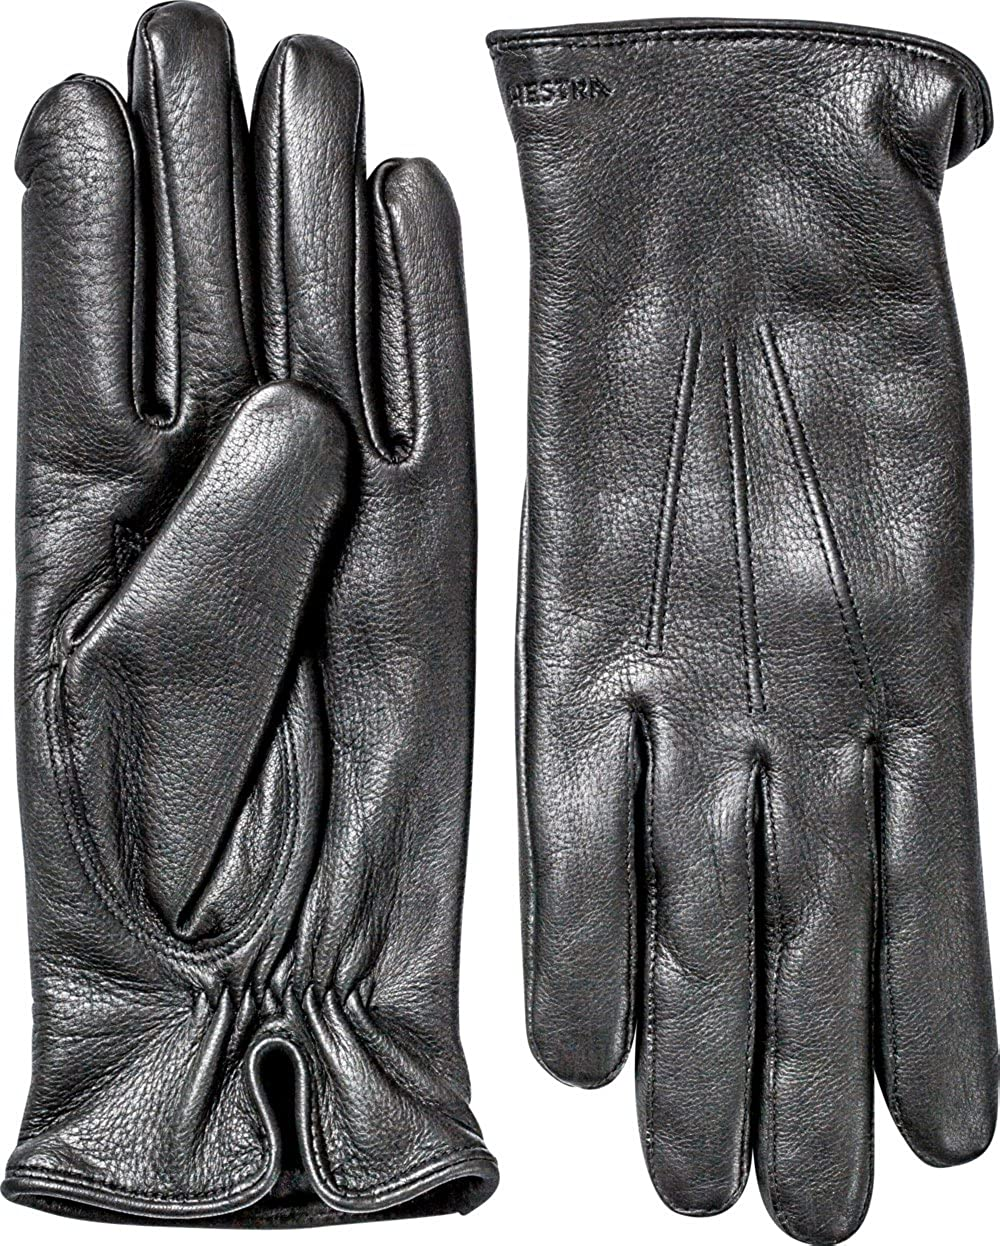 Hestra Mens Sales for sale Leather Gloves: Norman Cold Max 59% OFF Wool Weather Winte Lined